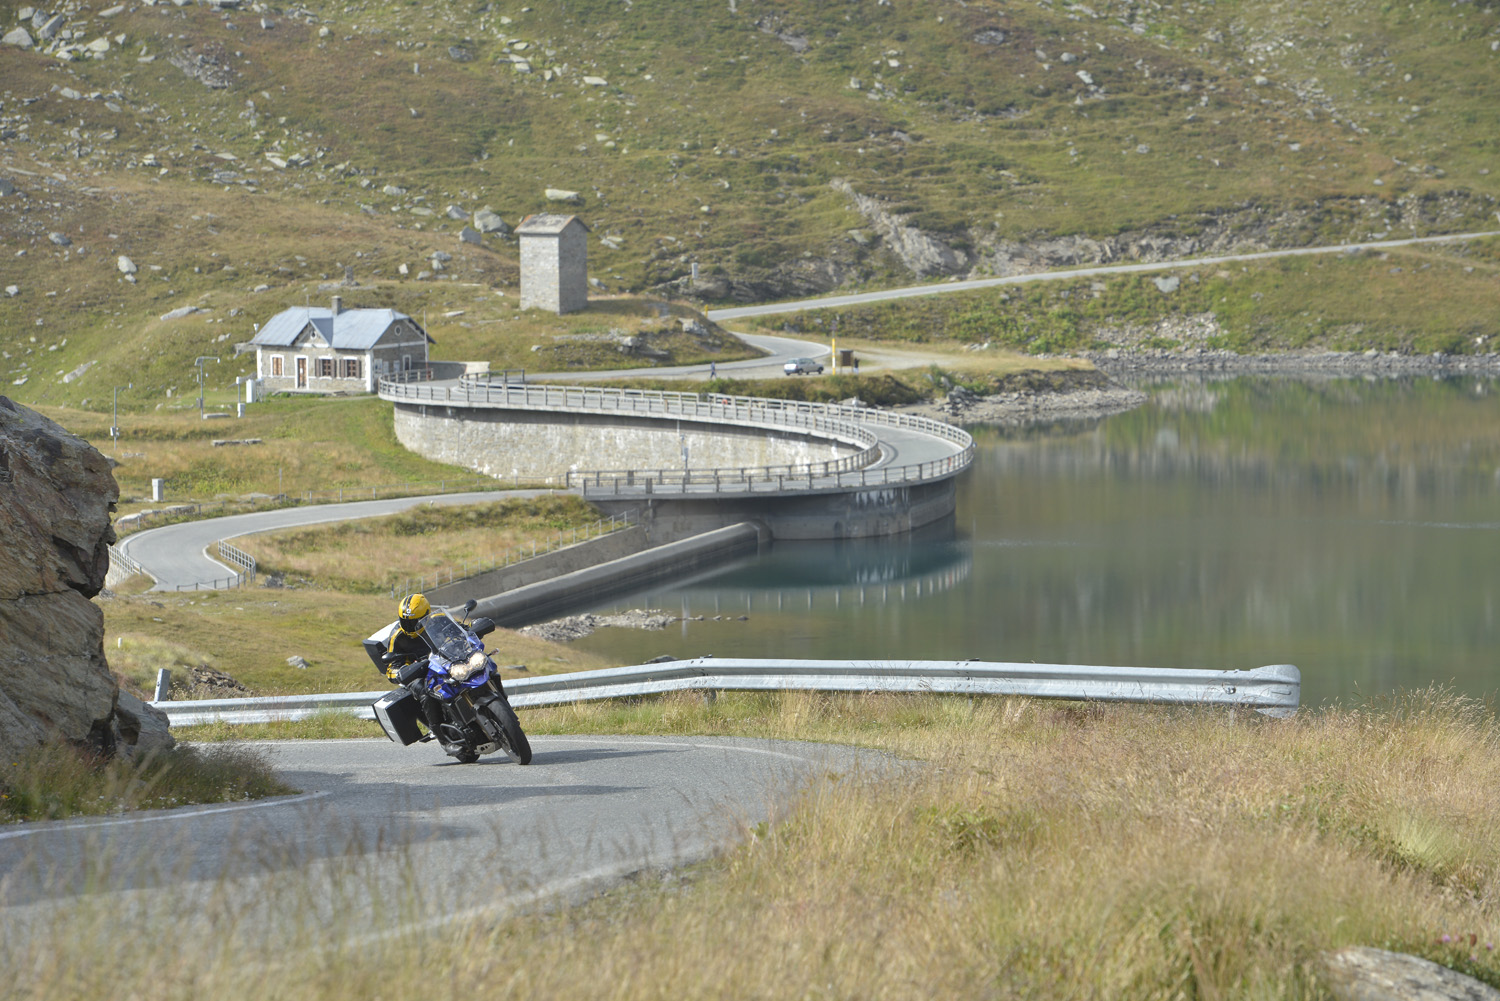 Colle del Nivolet has lakes, hairpins and virtually no traffic. It's amazing.